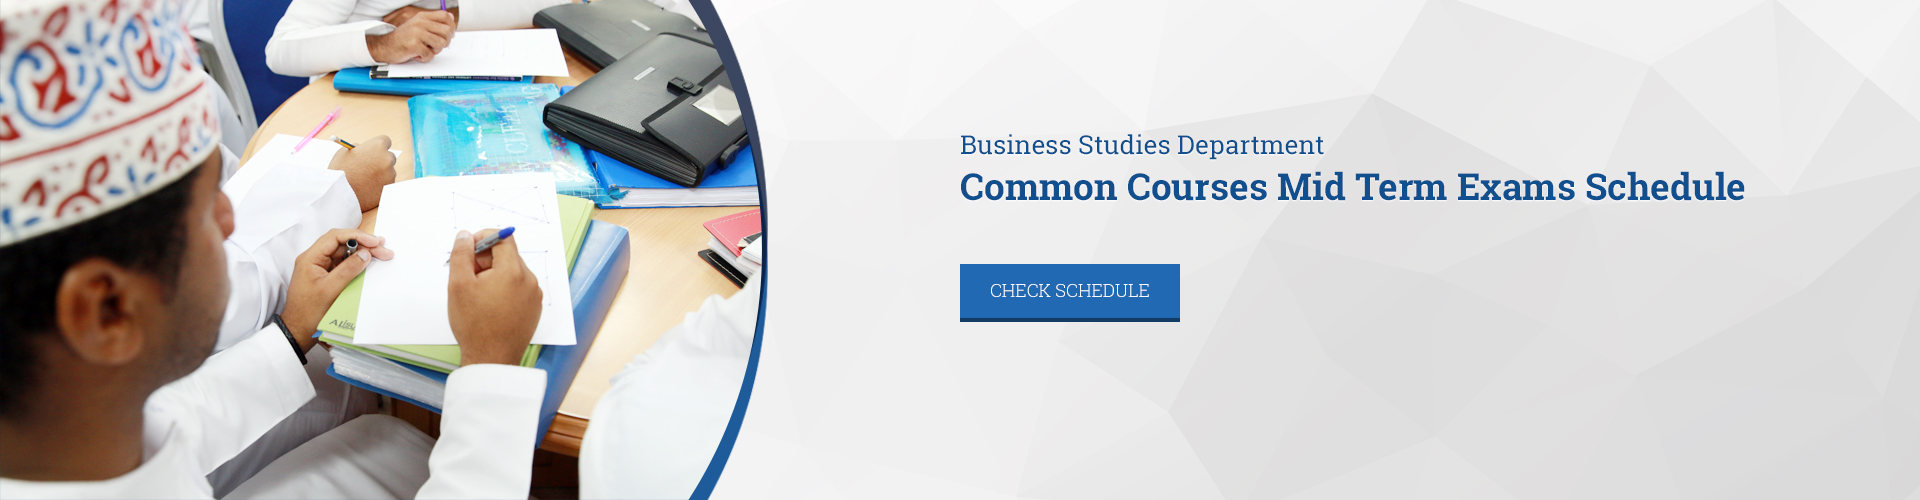 Business Studies Department Common Courses Mid Term Exams Schedule